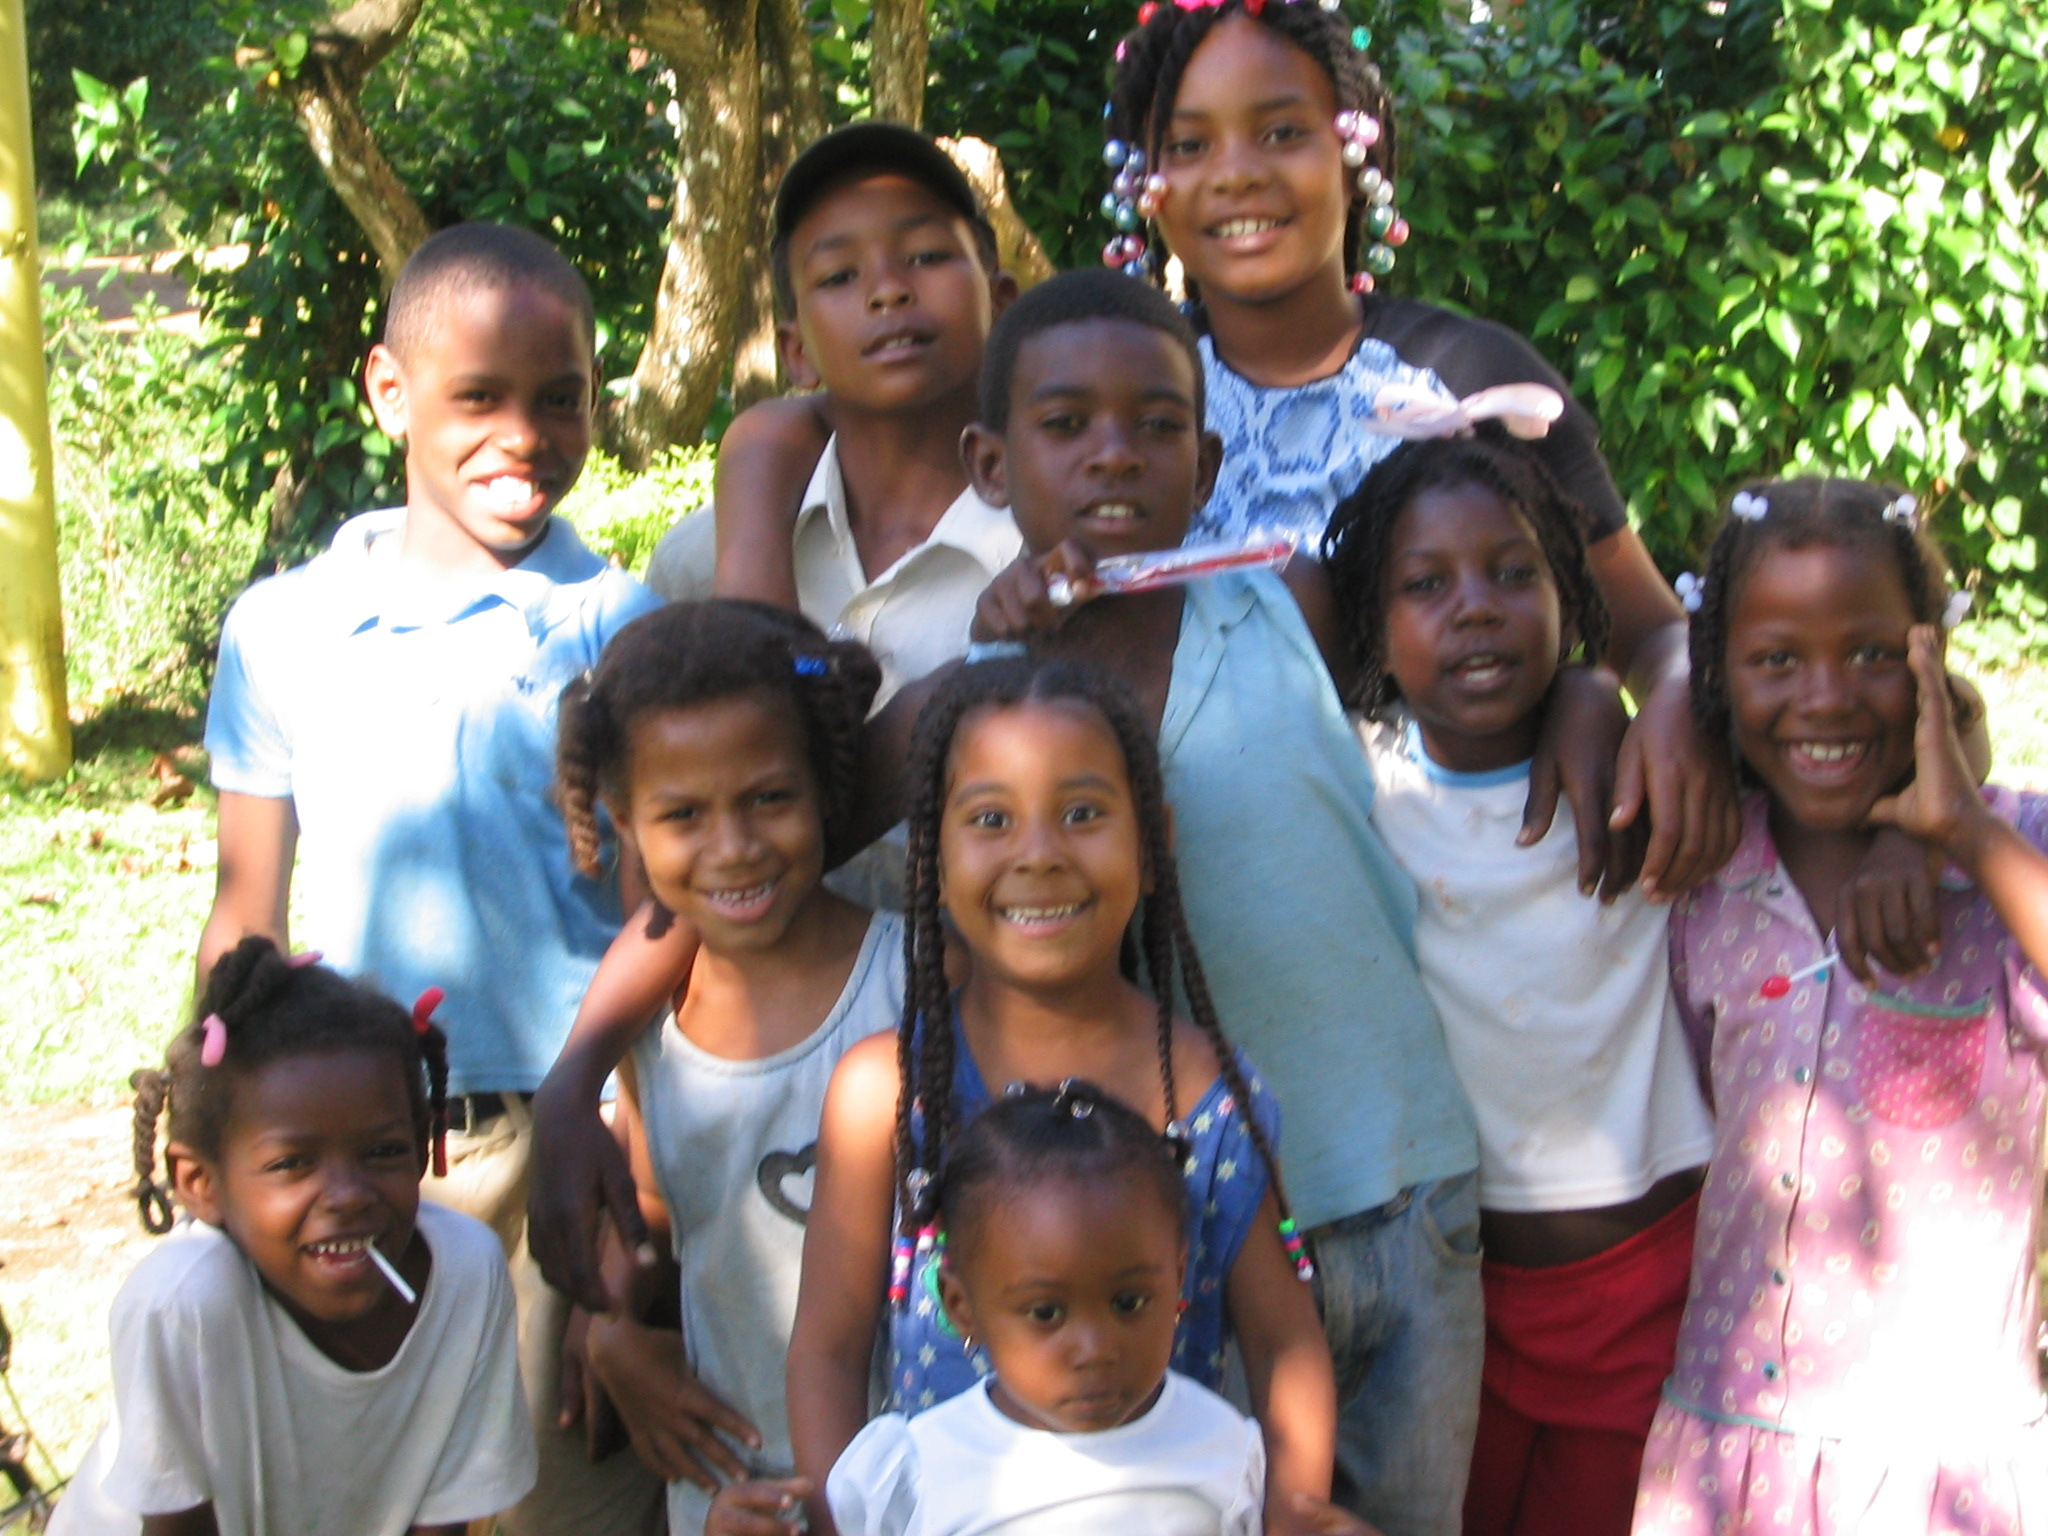 Kids in Cruz Verde who received donated toothbrushes, toys and other items